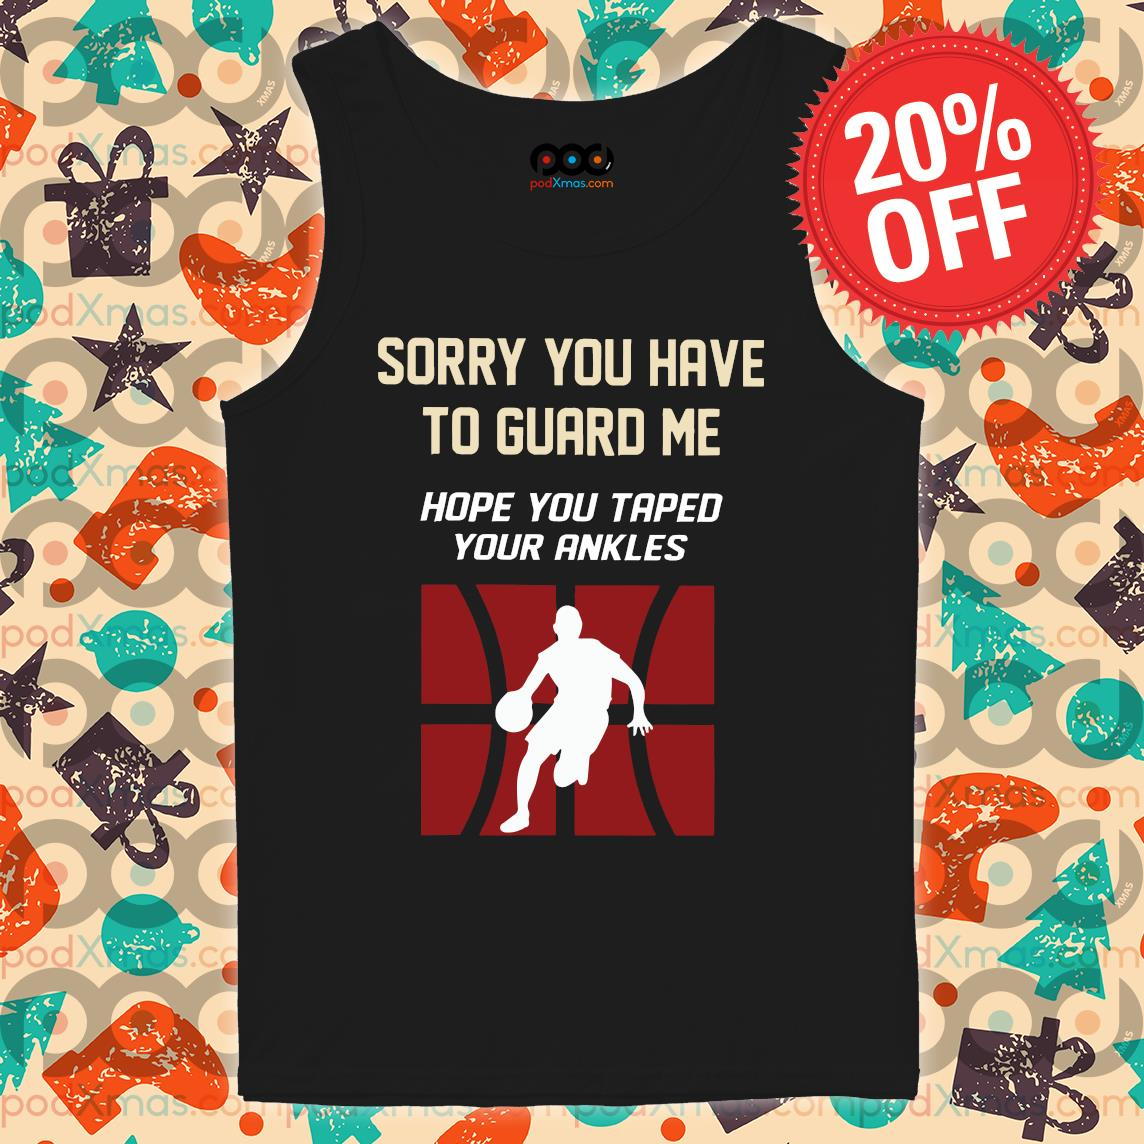 Sorry You Have To Guard Me Hope You Taped Your Ankles Basketball s Tank top PODxmas den